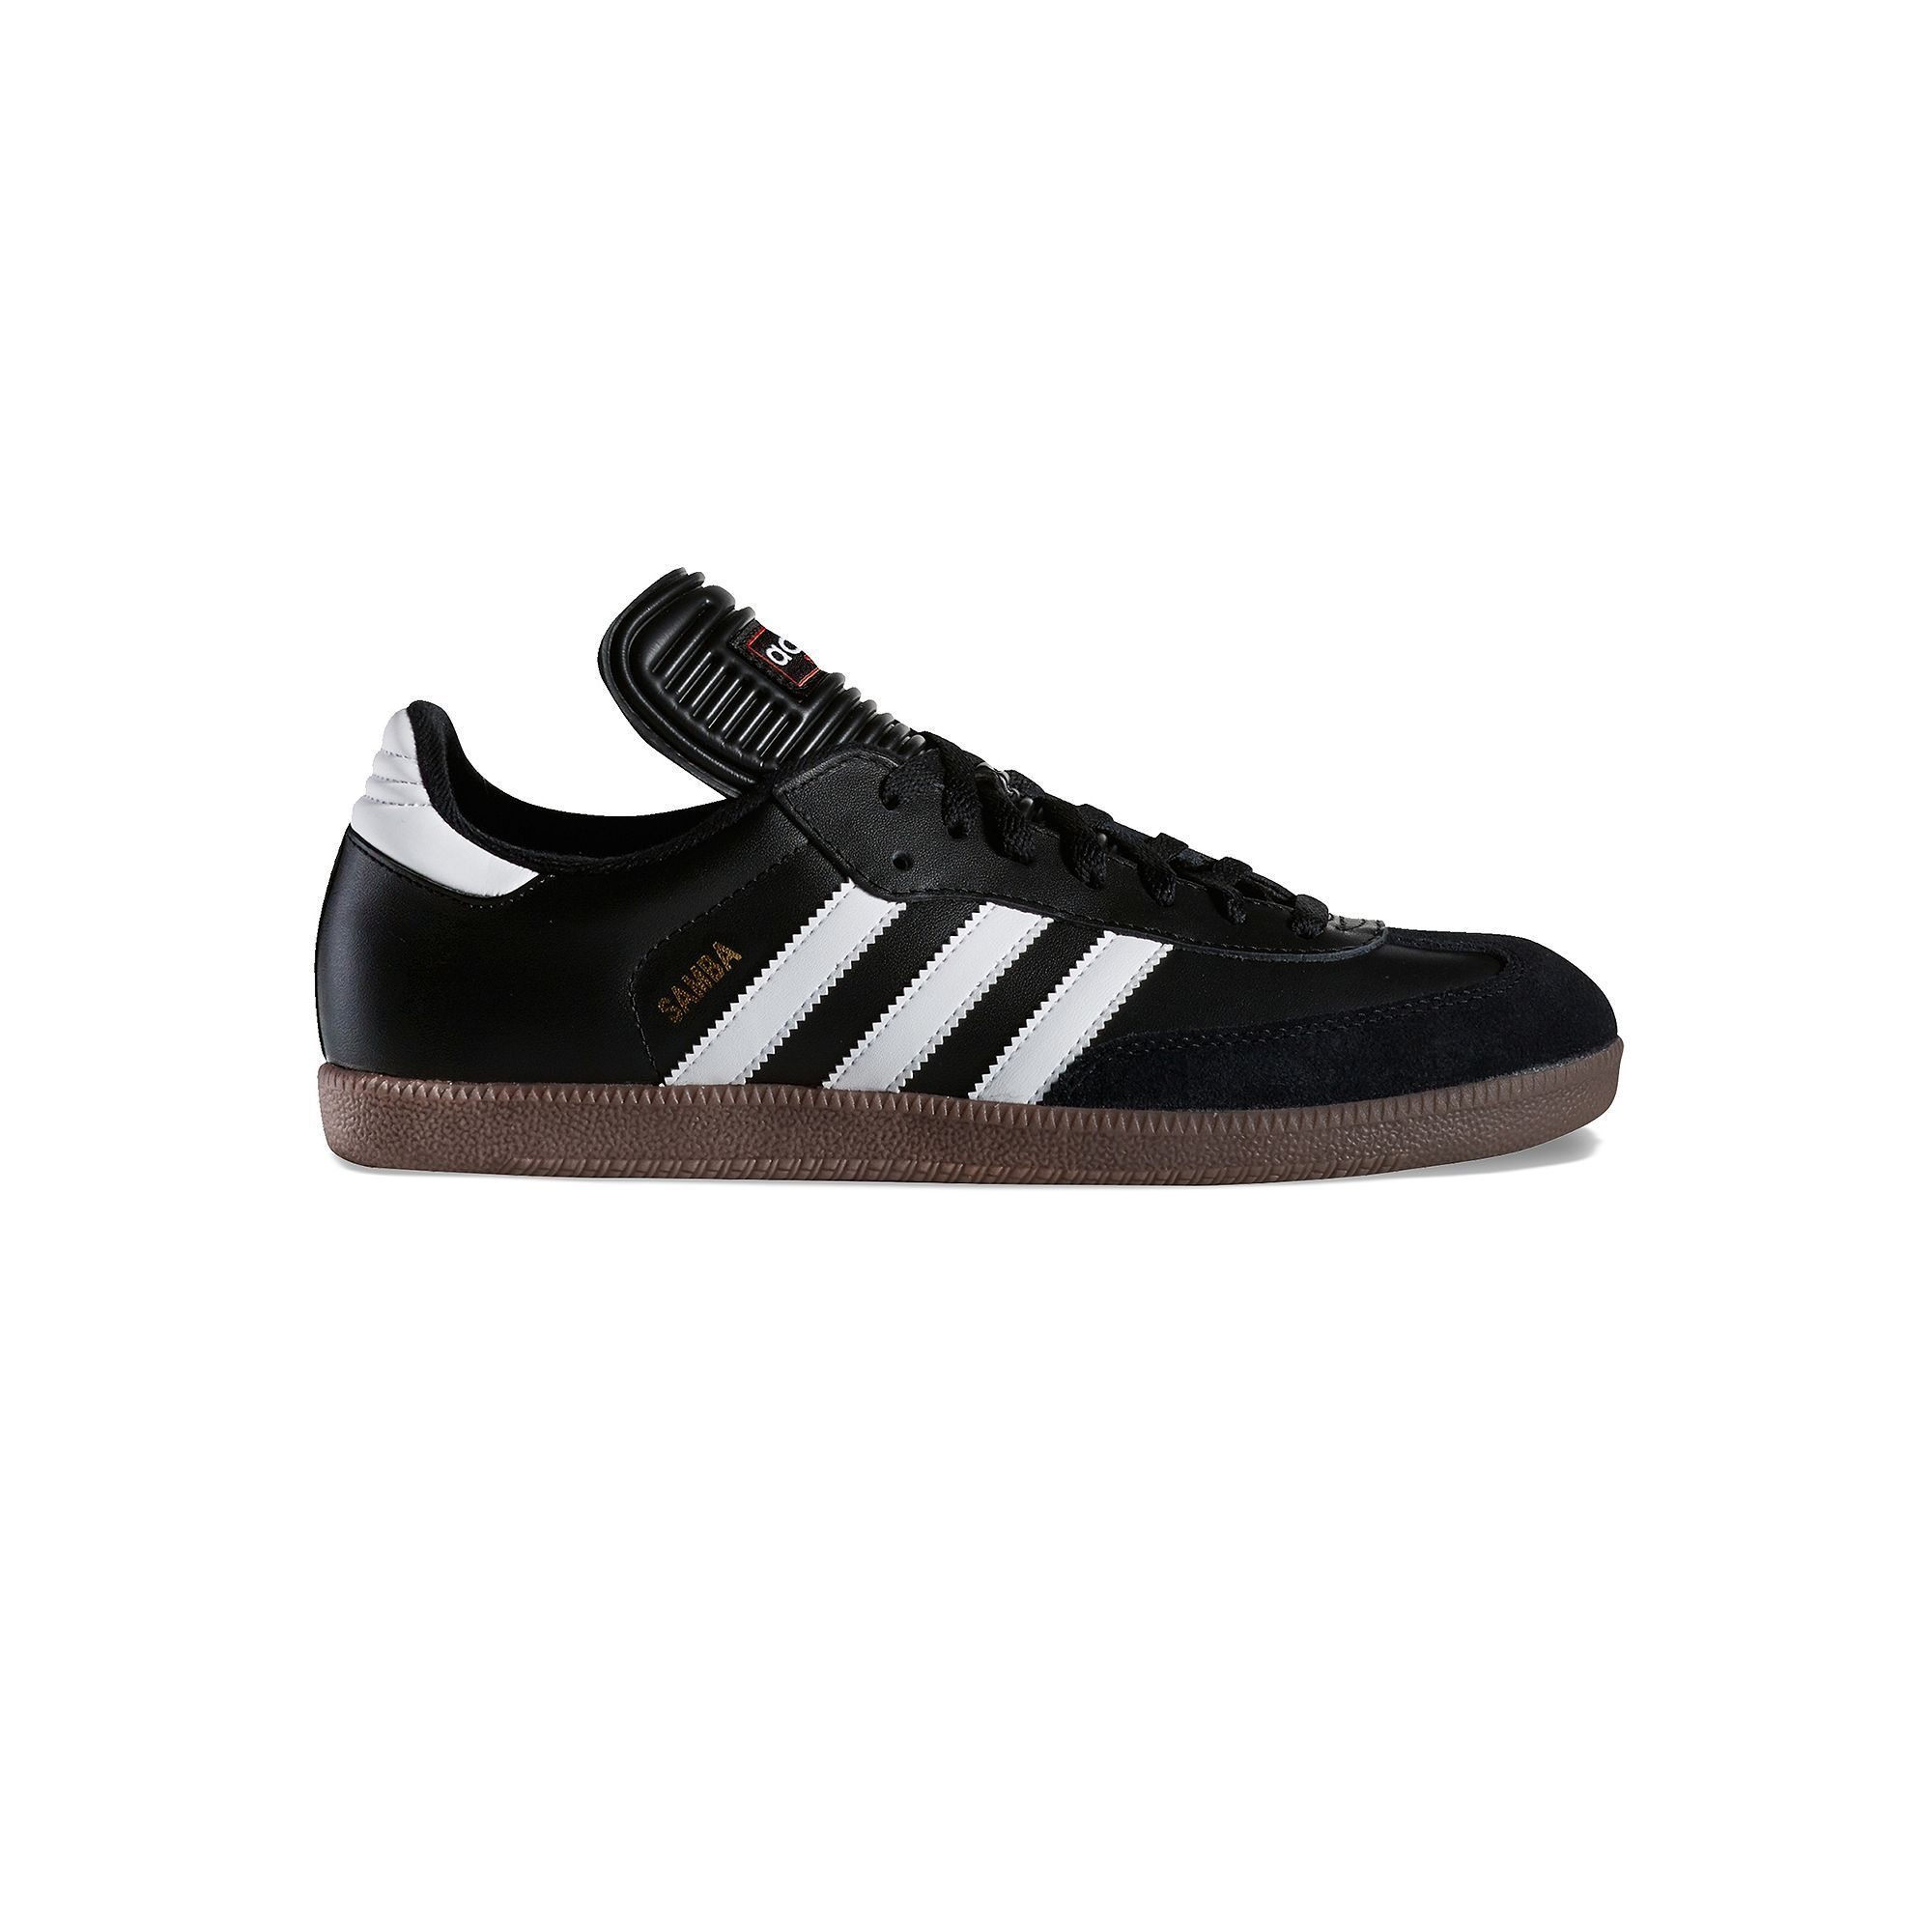 8e75035c7fa ... order adidas samba indoor soccer shoes men size 7 black durable be7c1  cdca1